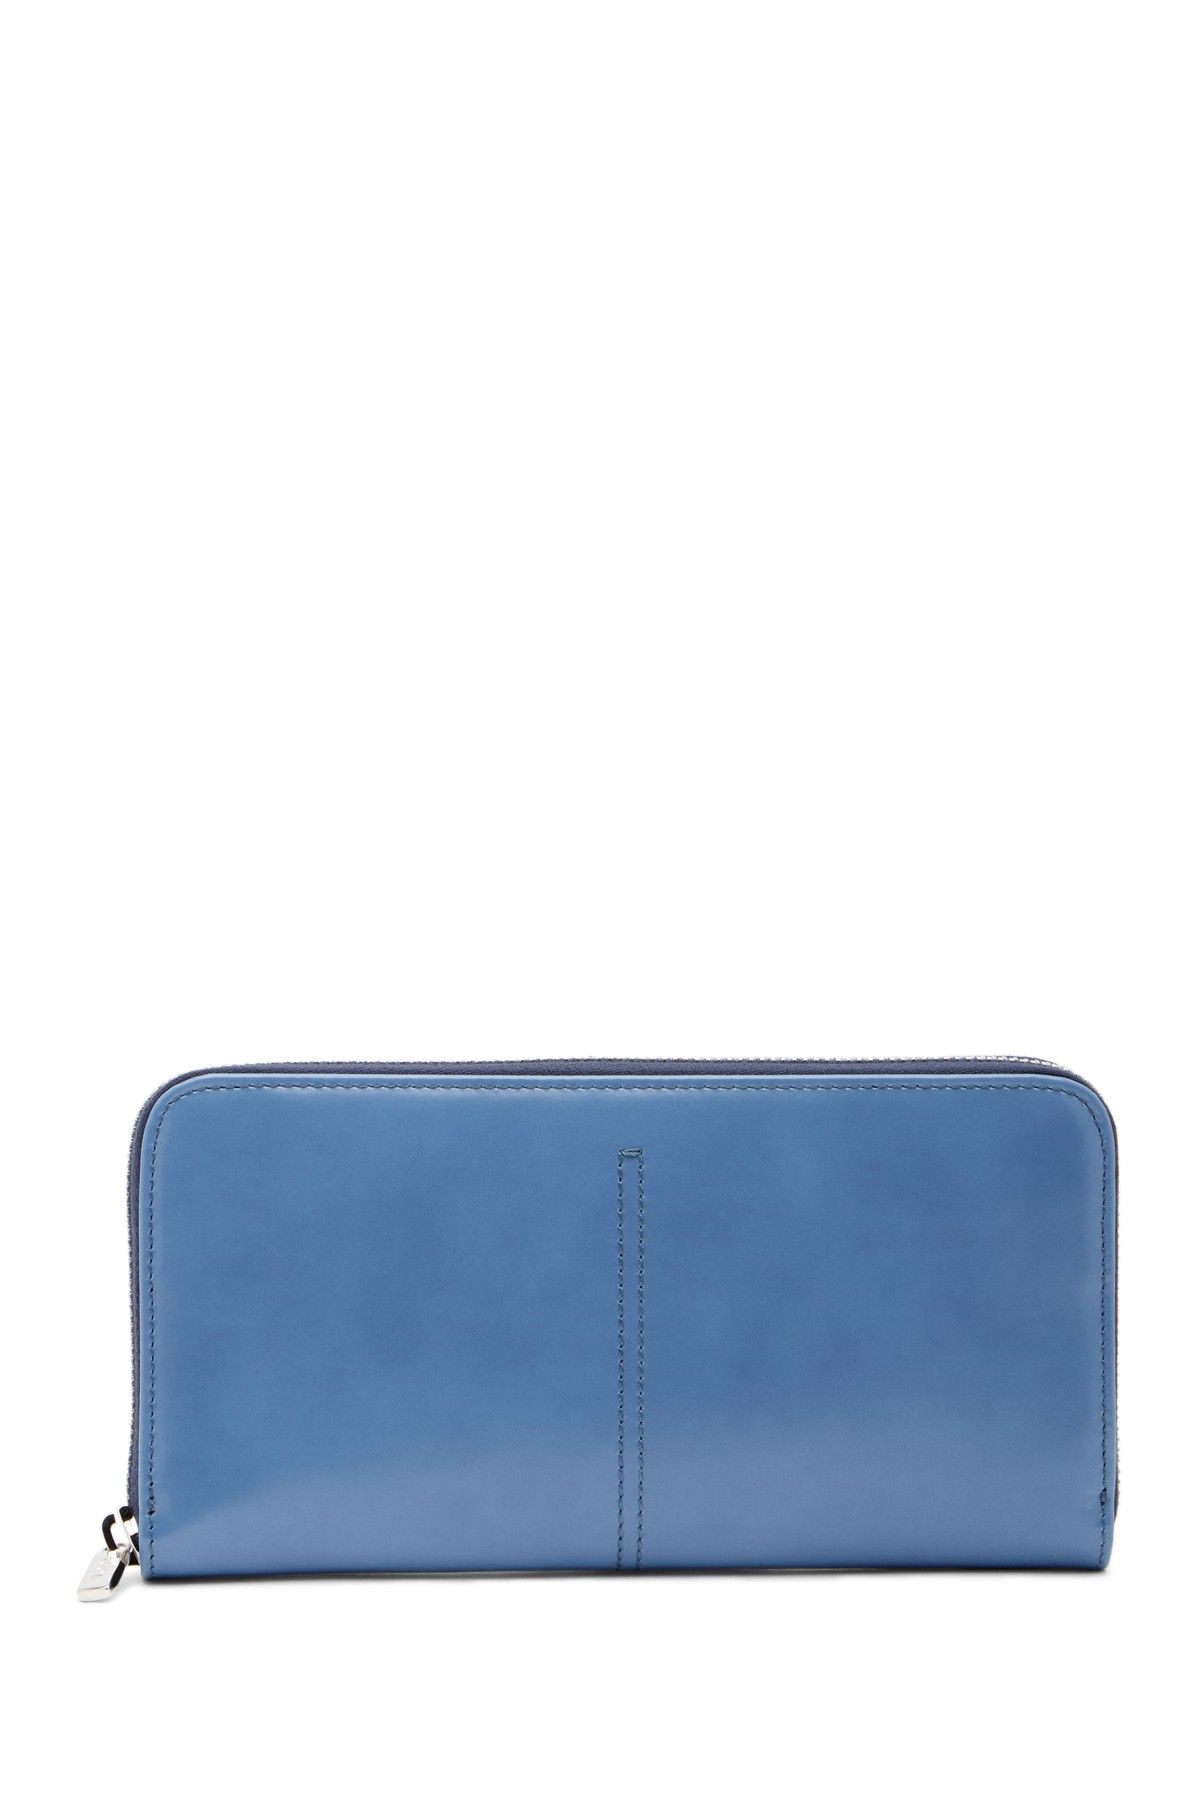 d65815a3ea Zip Around Leather Checkbook Clutch Wallet | Products | Pinterest